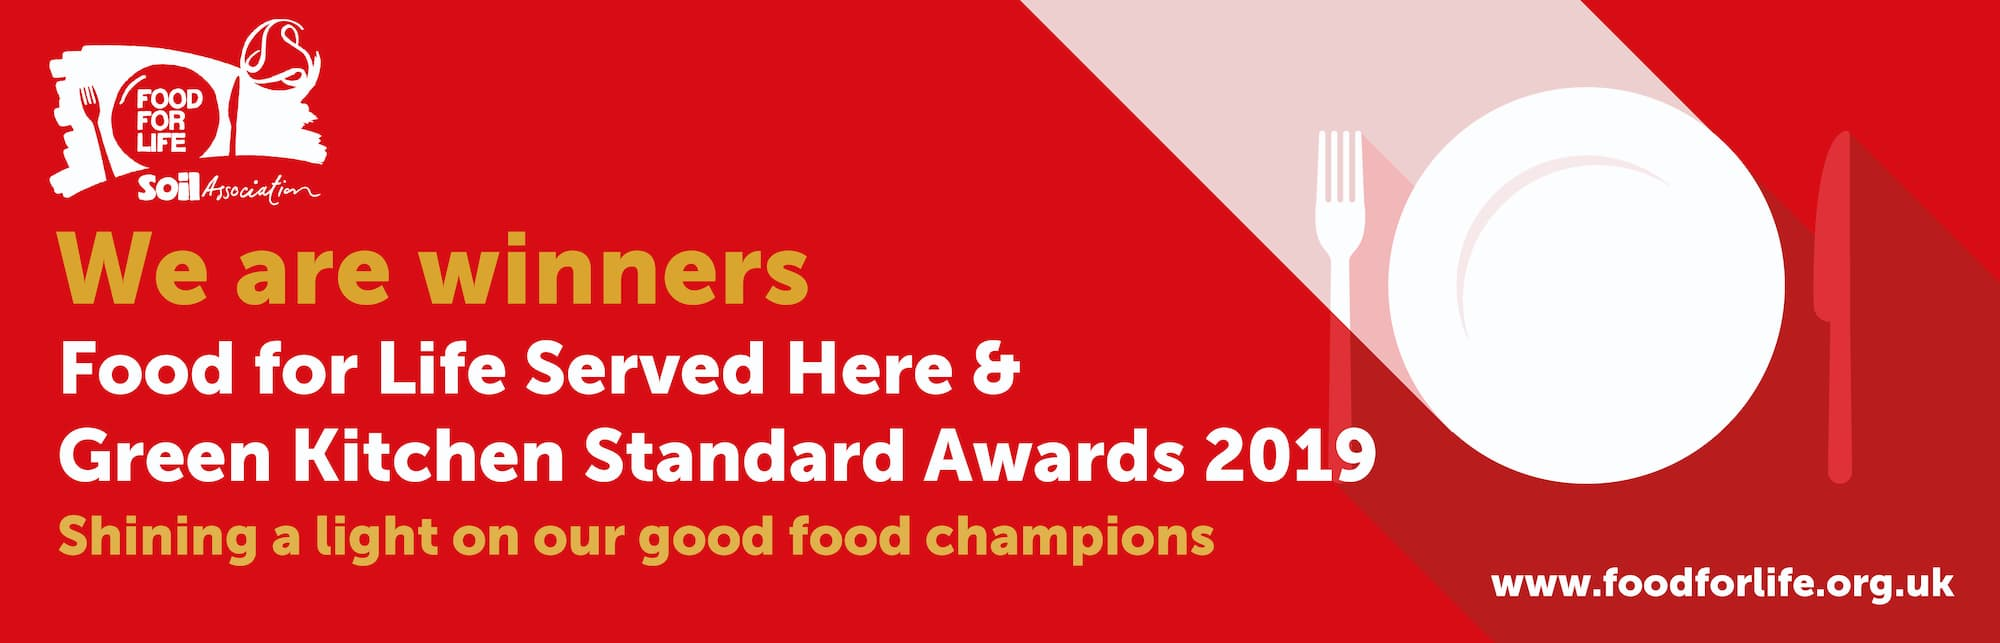 food for life award badge for Summerfield House care home